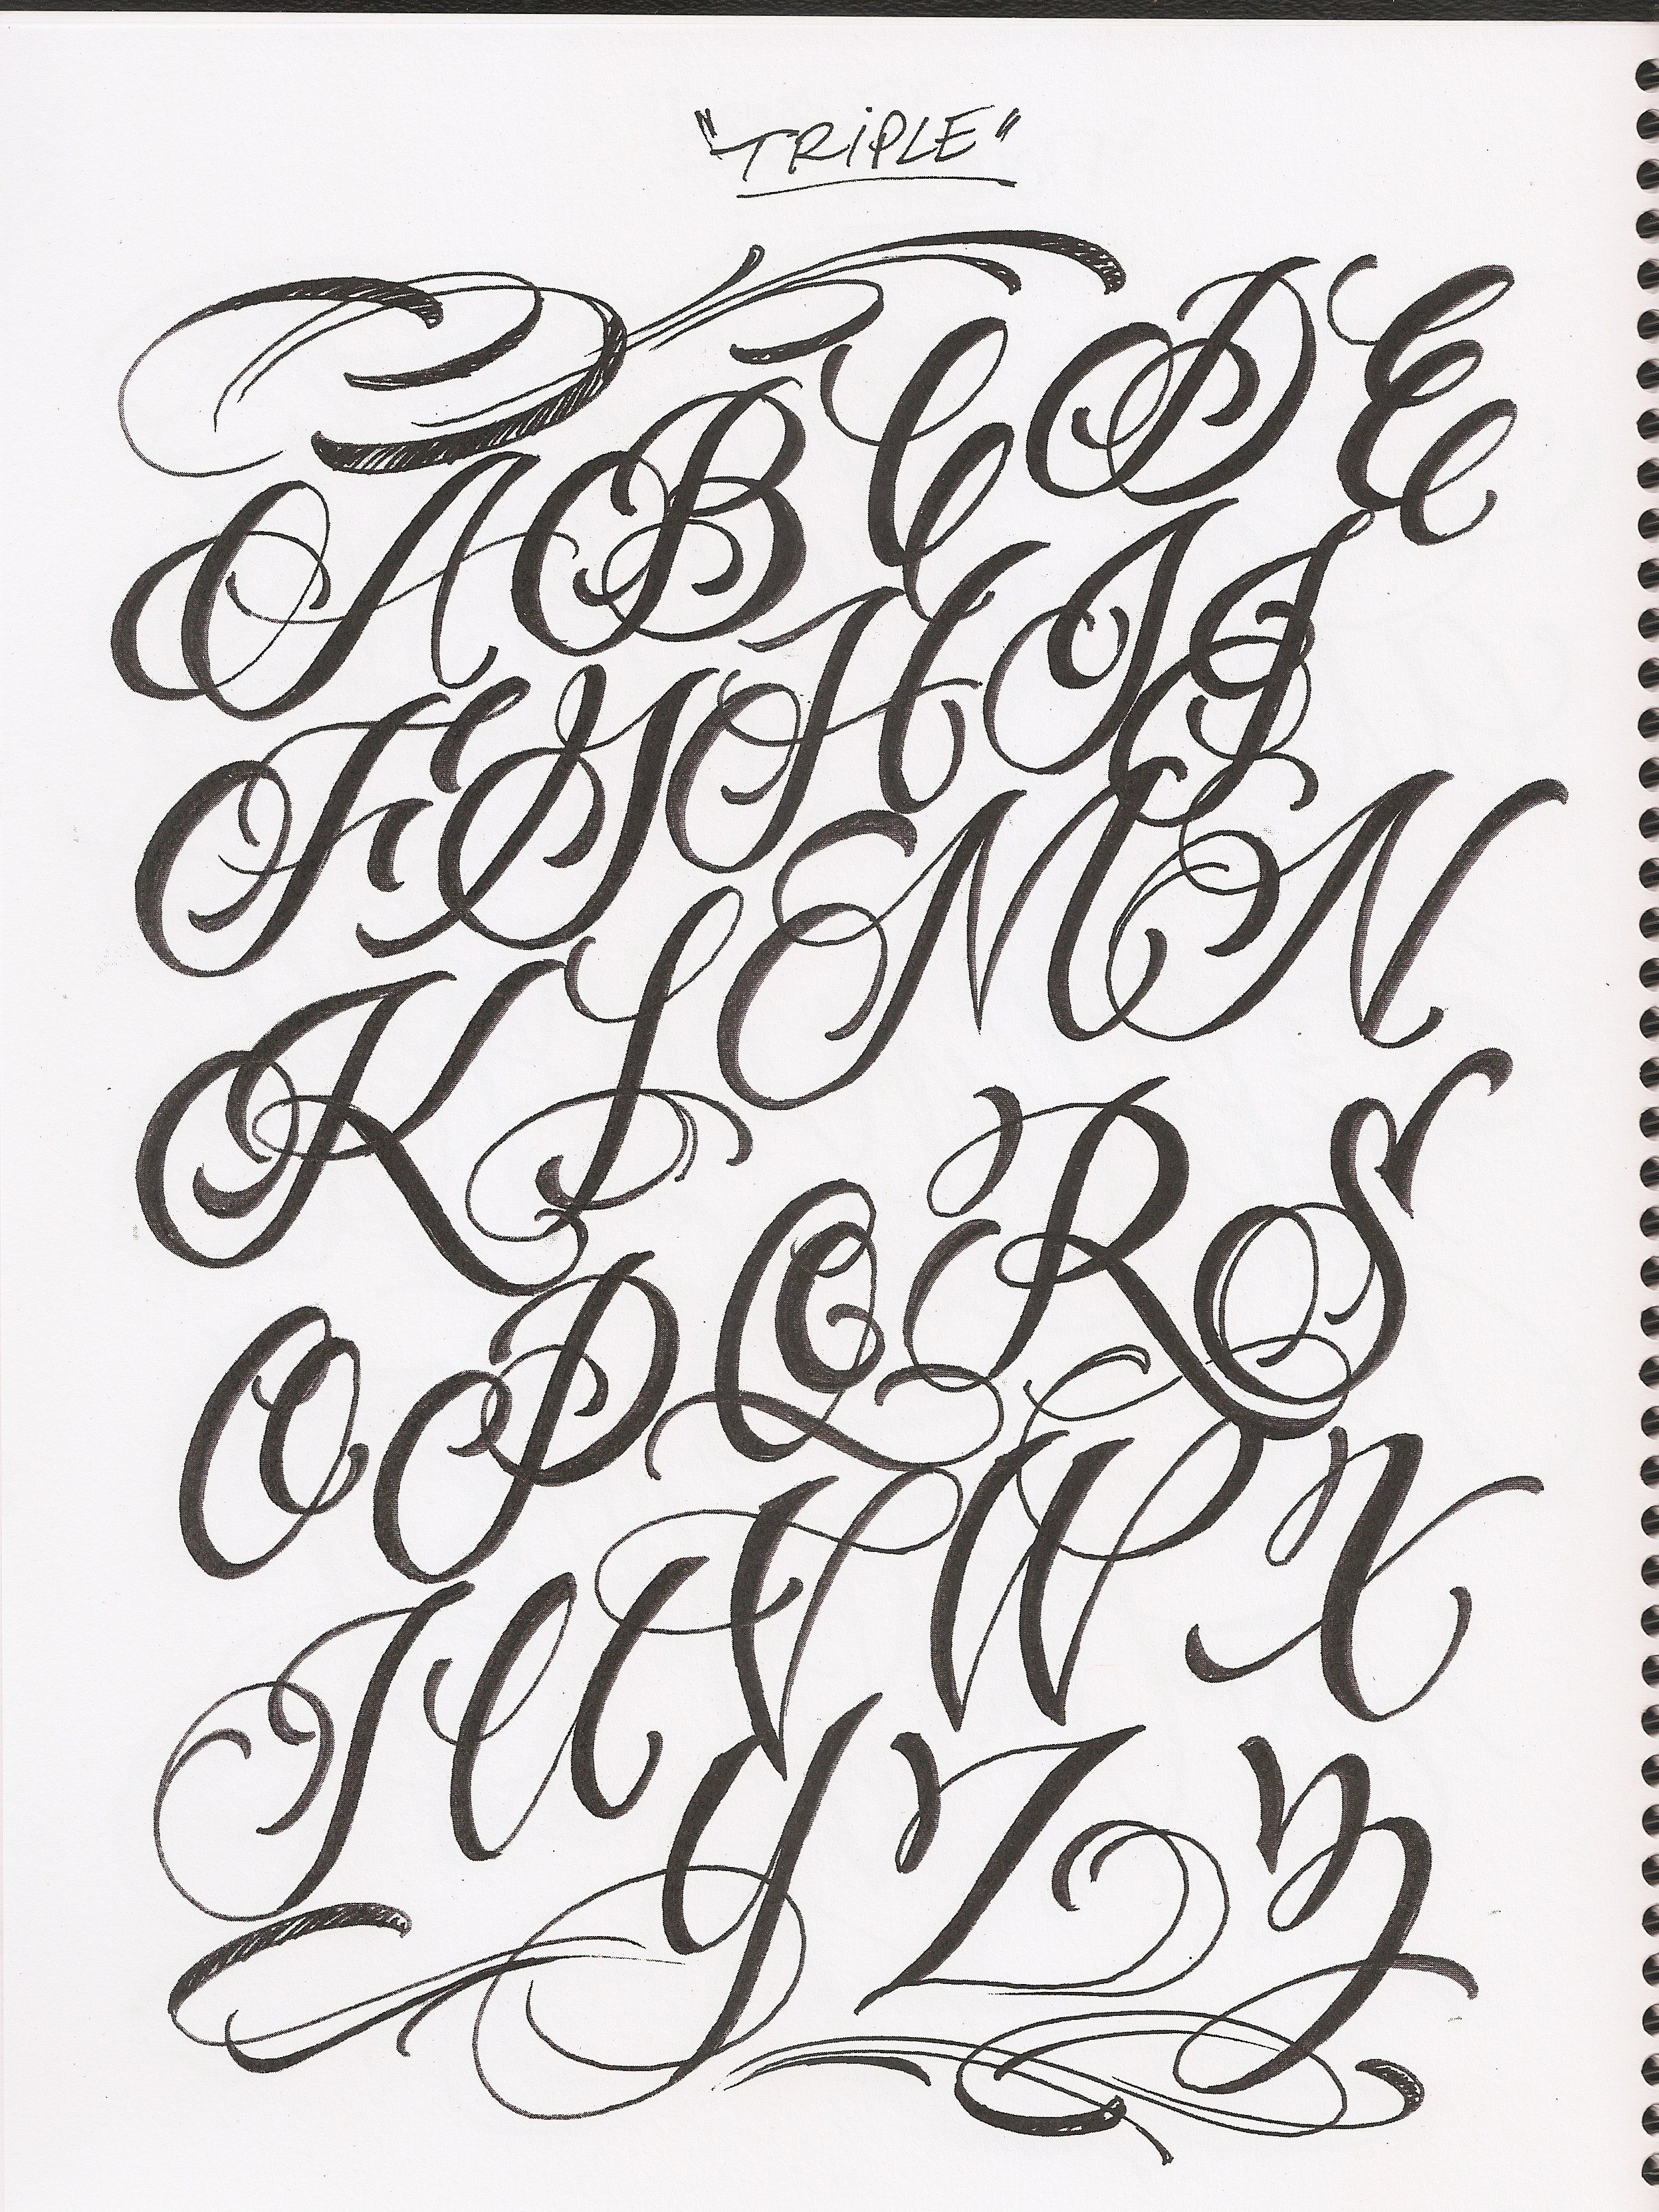 Calligraphy Tattoo Pinterest Pin By Silke Beyer On Kalligraphie Pinterest Letras Letra